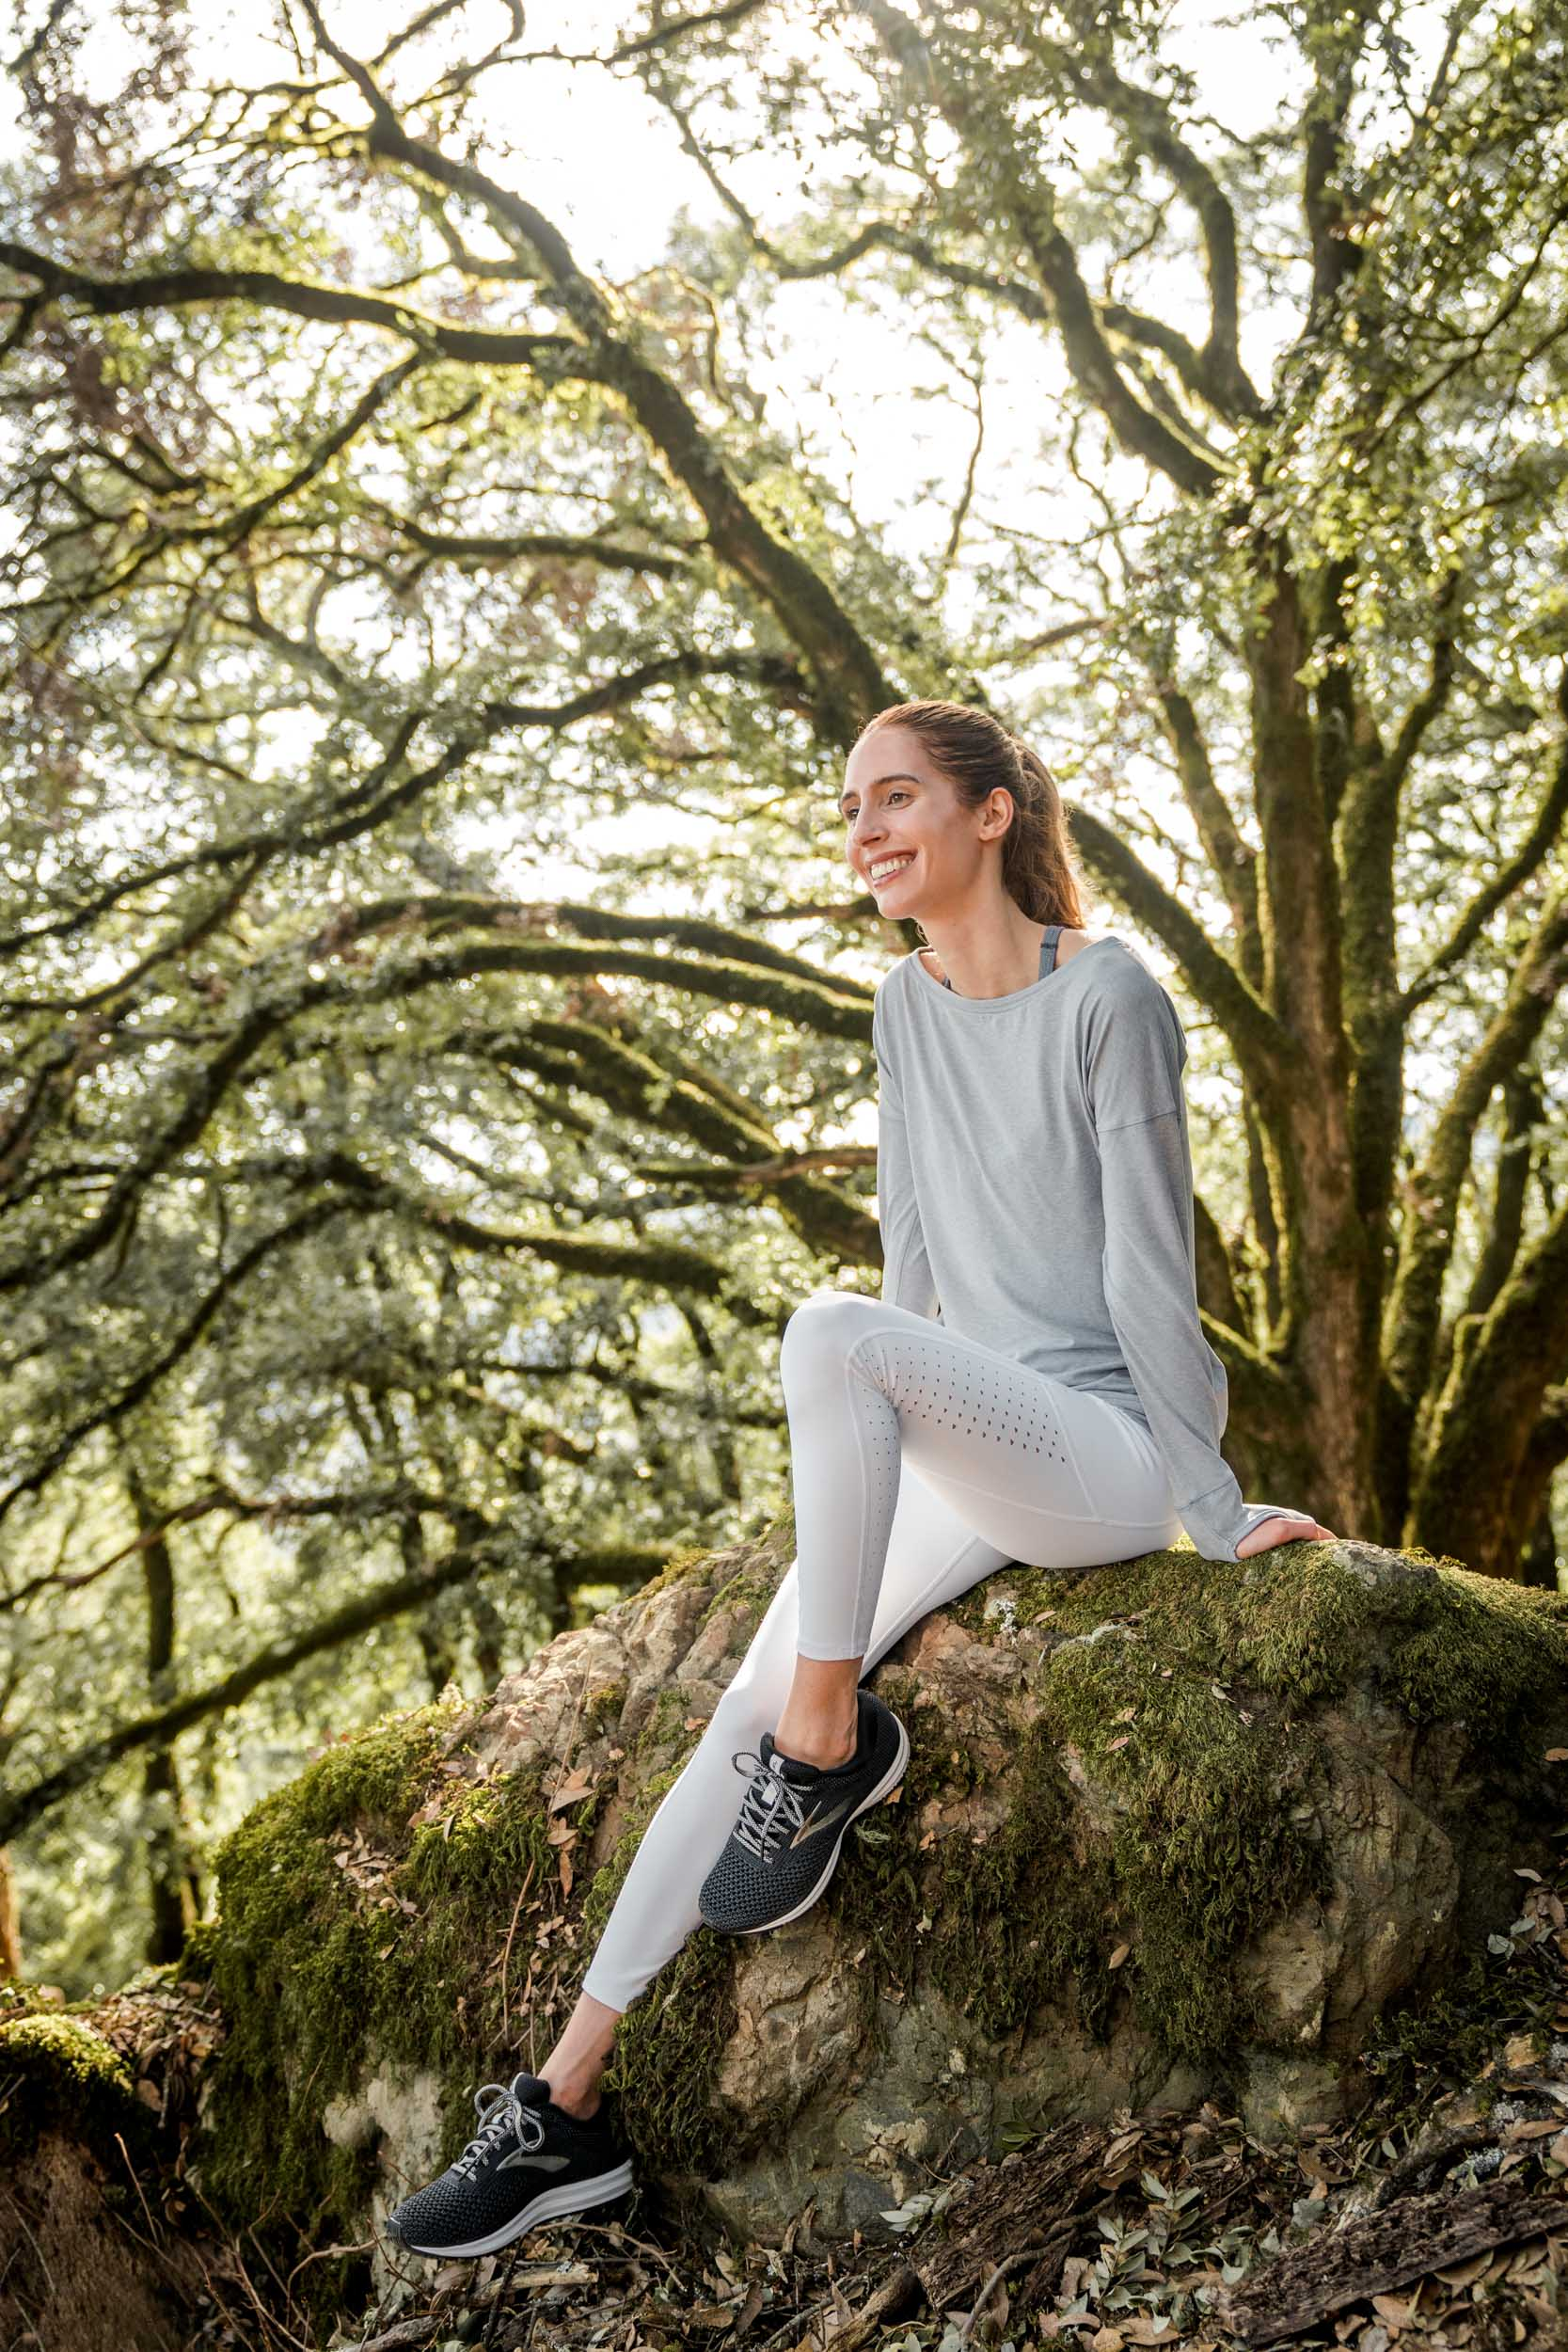 A female hiker sits on a mossy rock under a huge oak tree in California